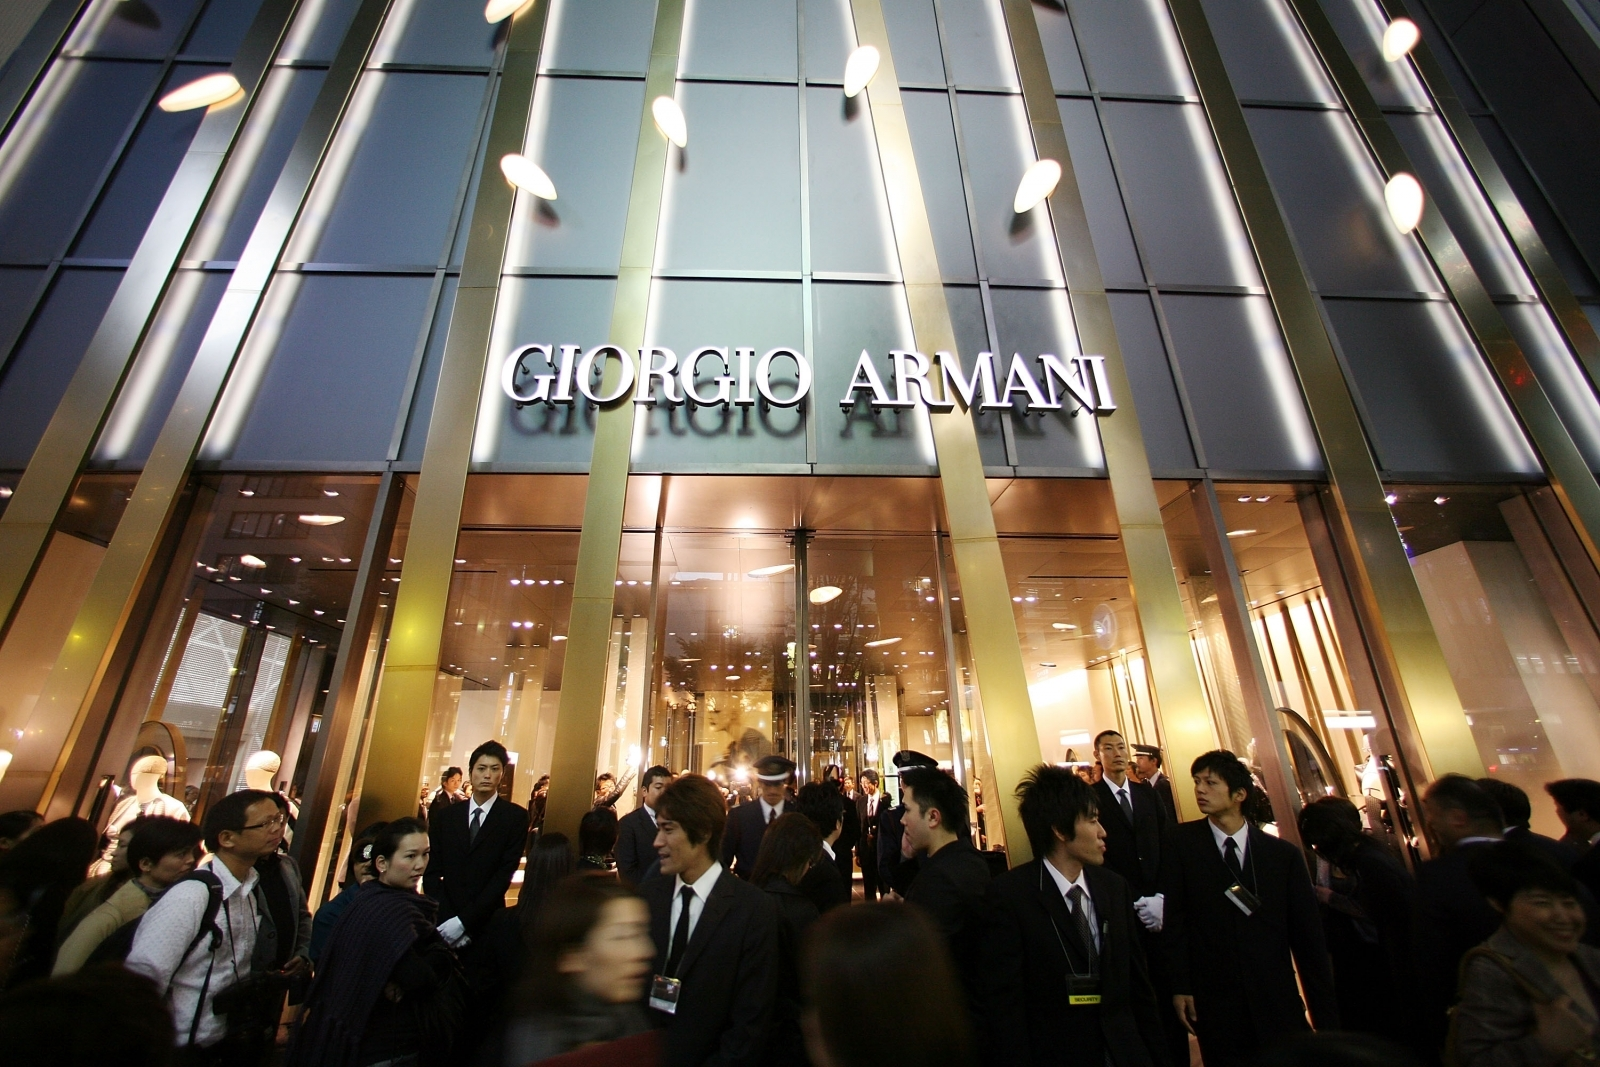 Would you spend £500 on a uniform? Japanese primary school under fire for Armani dress code